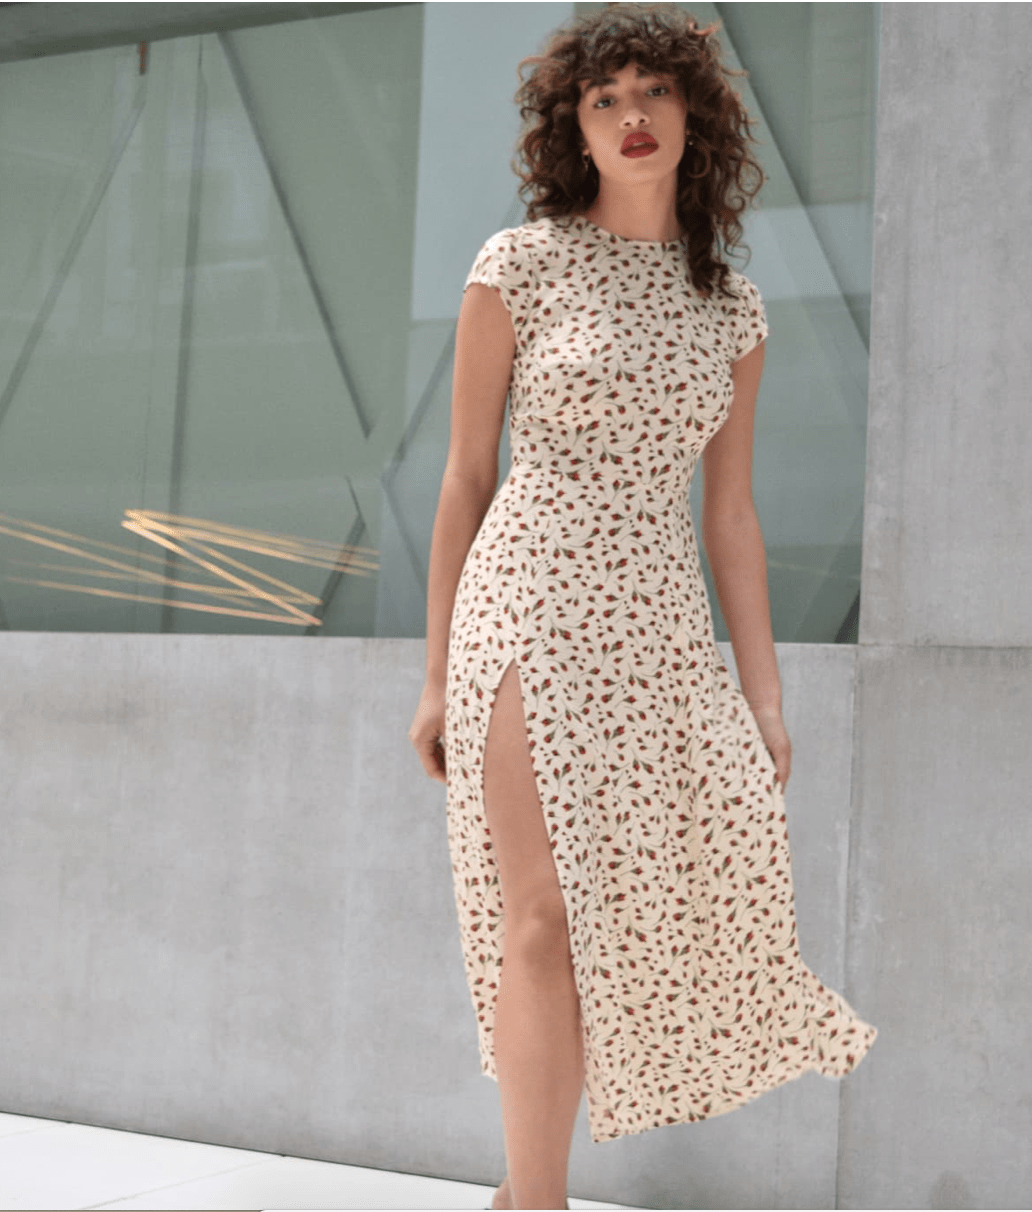 Casual House Dresses For A Socially Distant Summer Style Business Casual Outfits For Women Business Casual Outfits For Work Dresses [ 1212 x 1032 Pixel ]